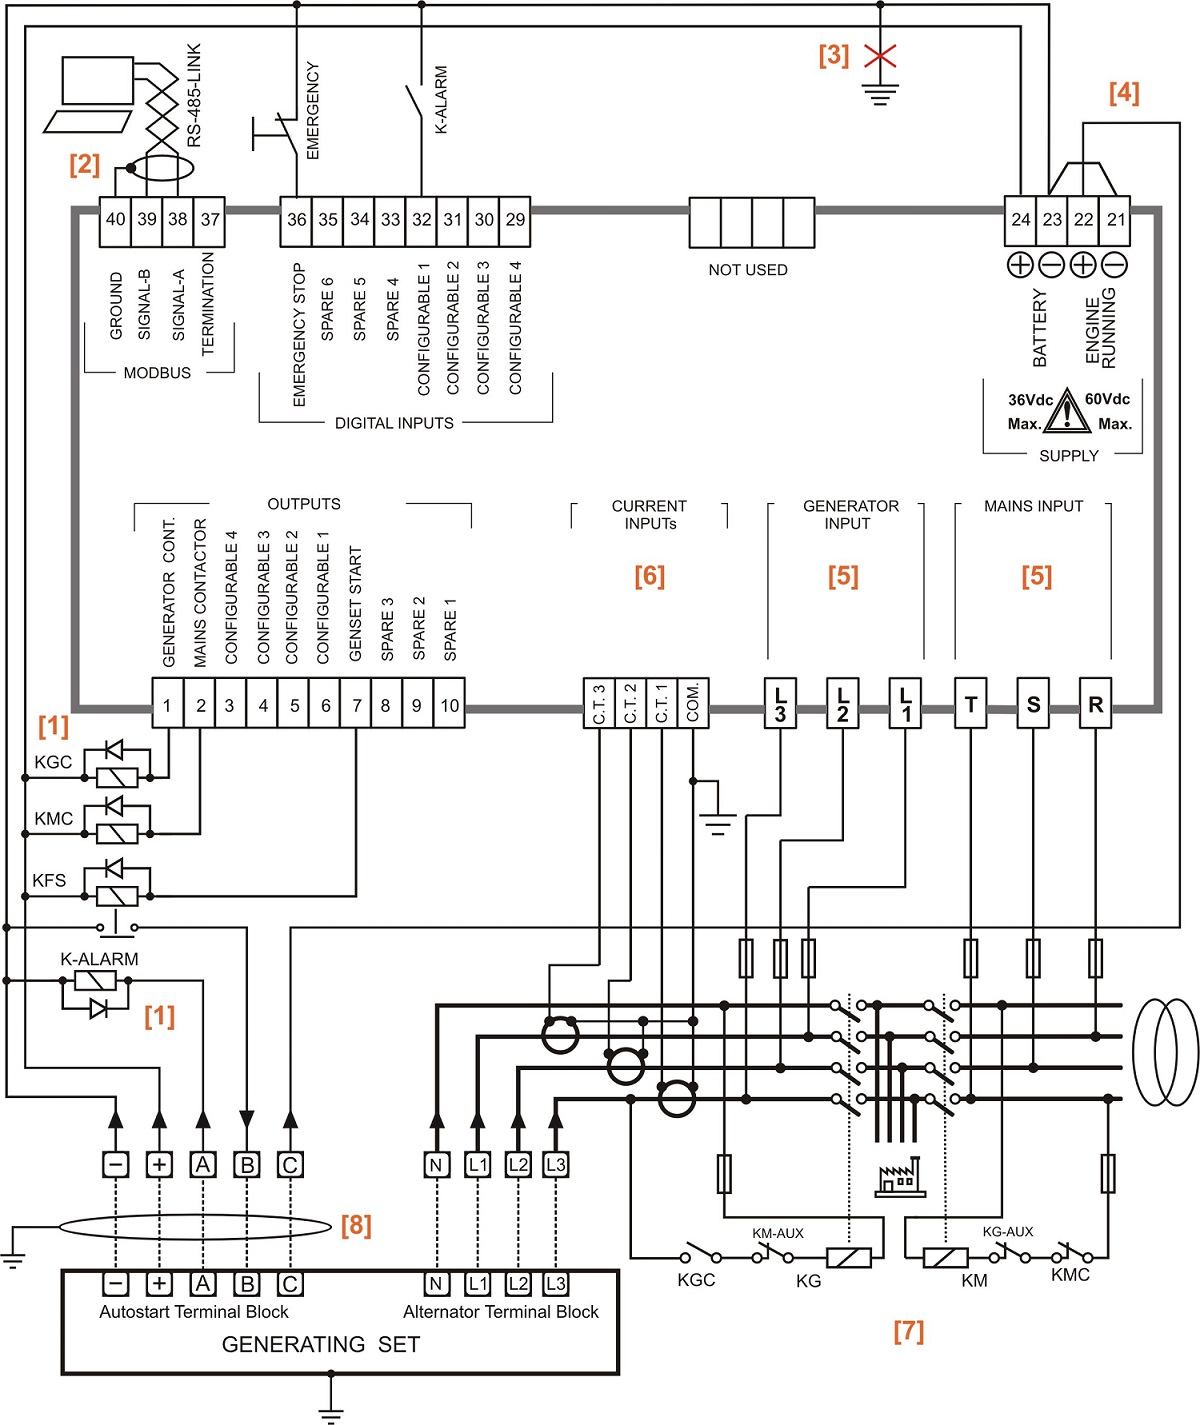 Be28 Automatic Transfer Switch Controller Connections automatic transfer switch circuit diagram genset controller denyo generator wiring diagram at metegol.co